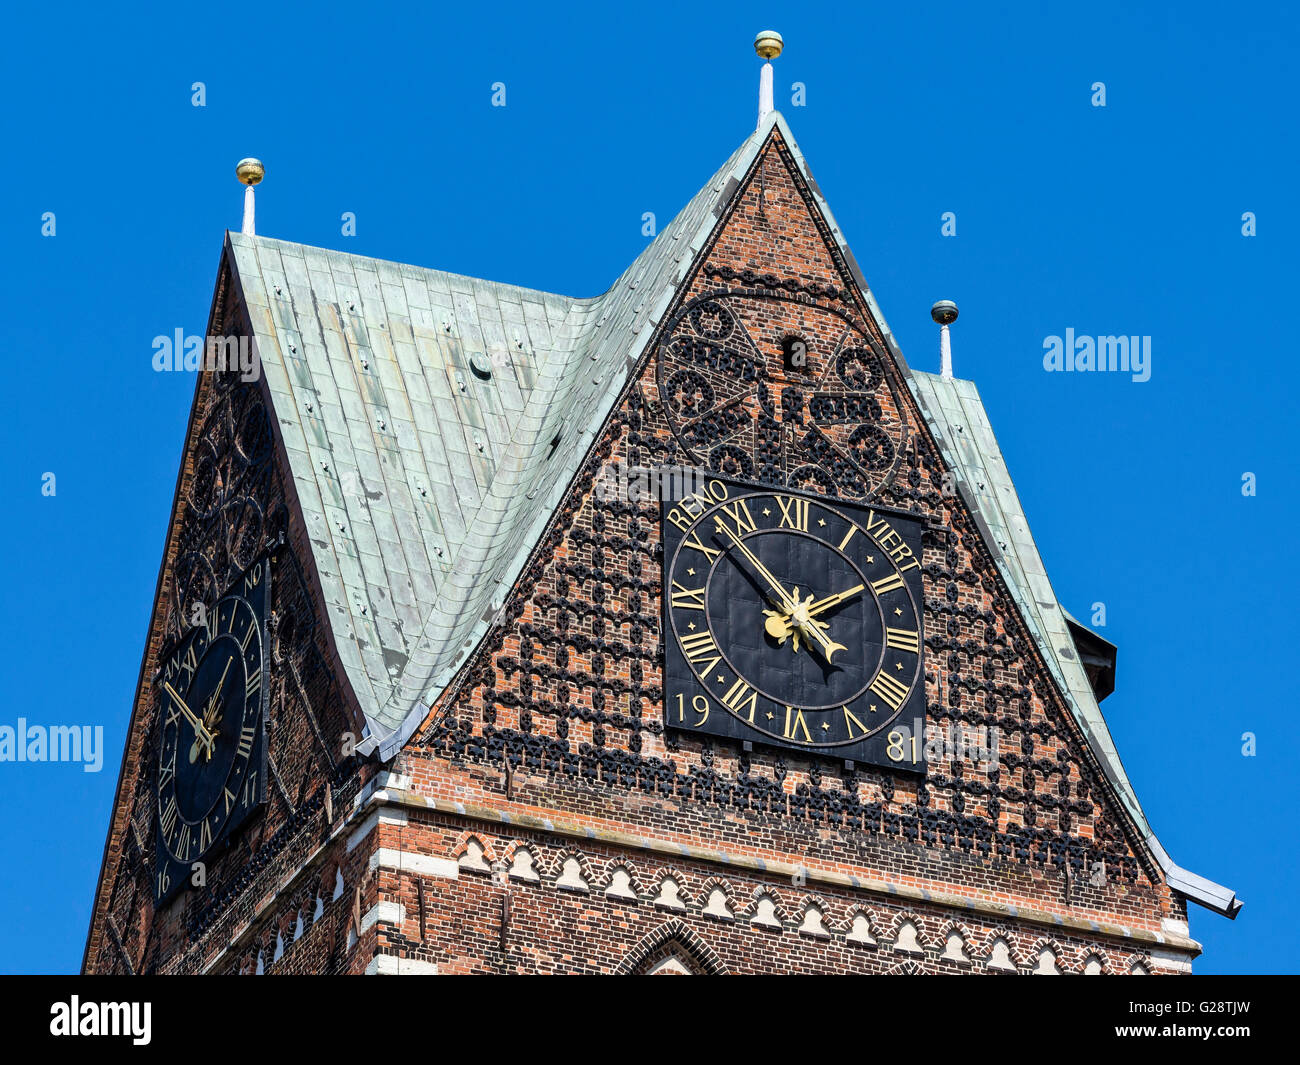 Tower of St. Mary church, remaining ruin left after 2. world war, Wismar, Germany - Stock Image